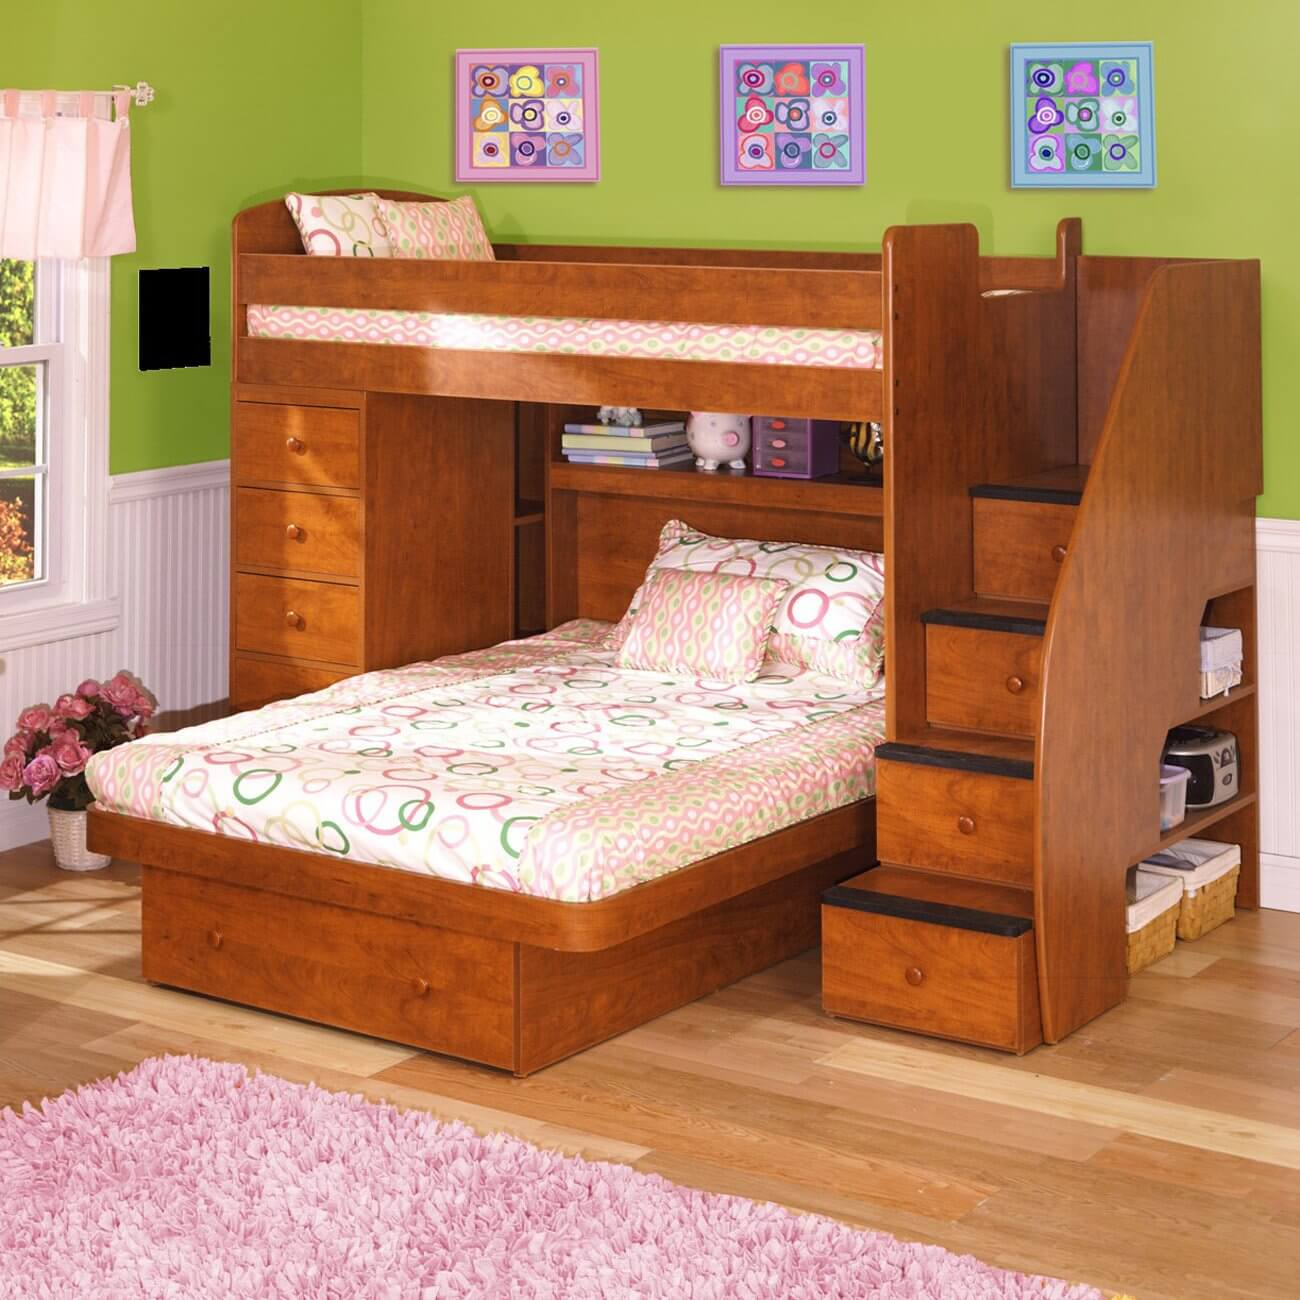 Wood bunk beds with desk - This Engineered Wood L Shaped Bunk Is A Twin Over Full Size Bed The